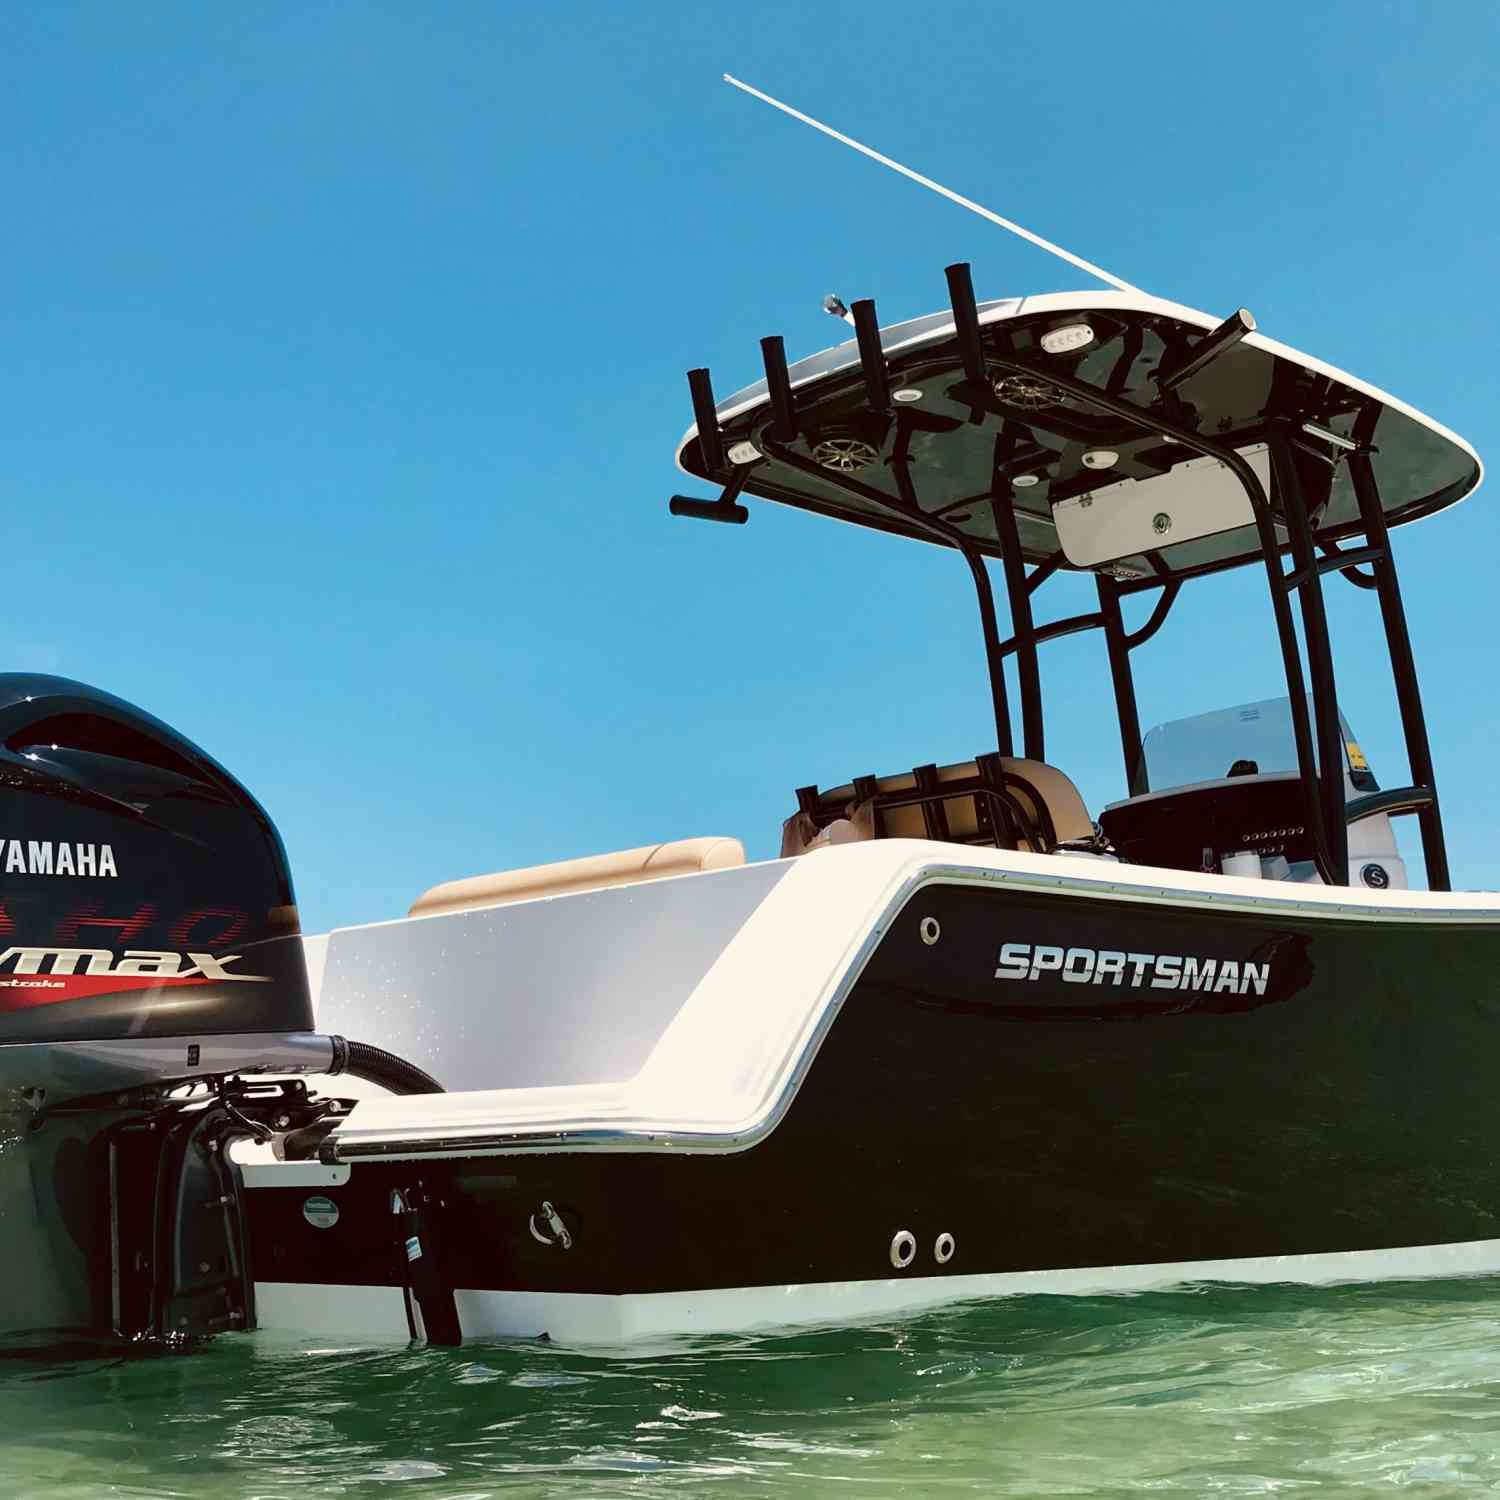 Title: Crab Island - On board their Sportsman Open 232 Center Console - Location: Destin, FL. Participating in the Photo Contest #SportsmanFebruary2019